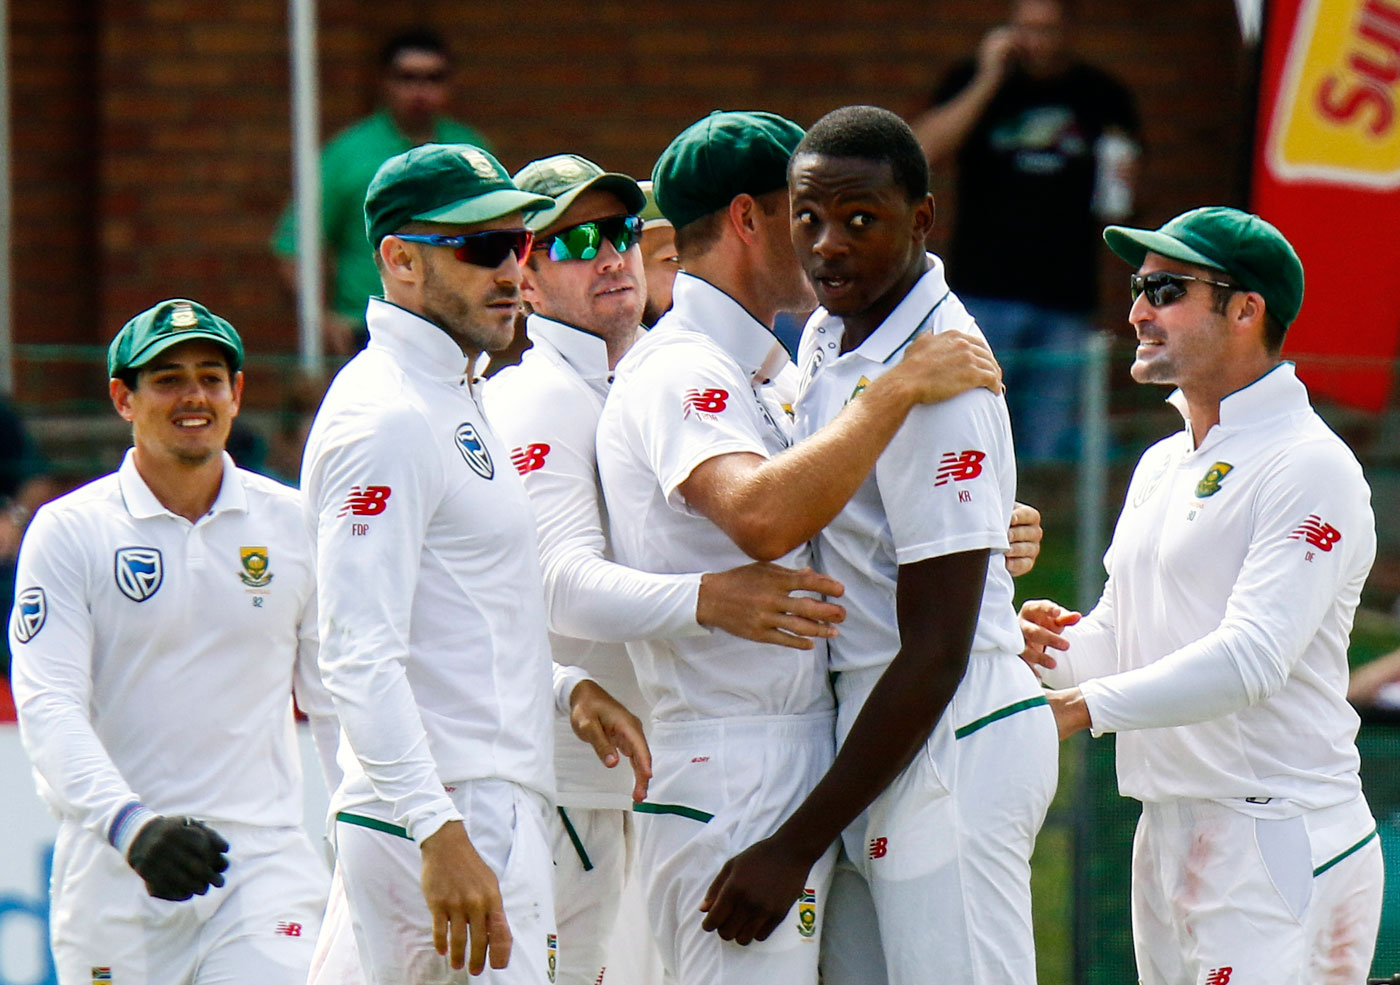 South Africa fast bowler Kagiso Rabada charged after Steve Smith incident